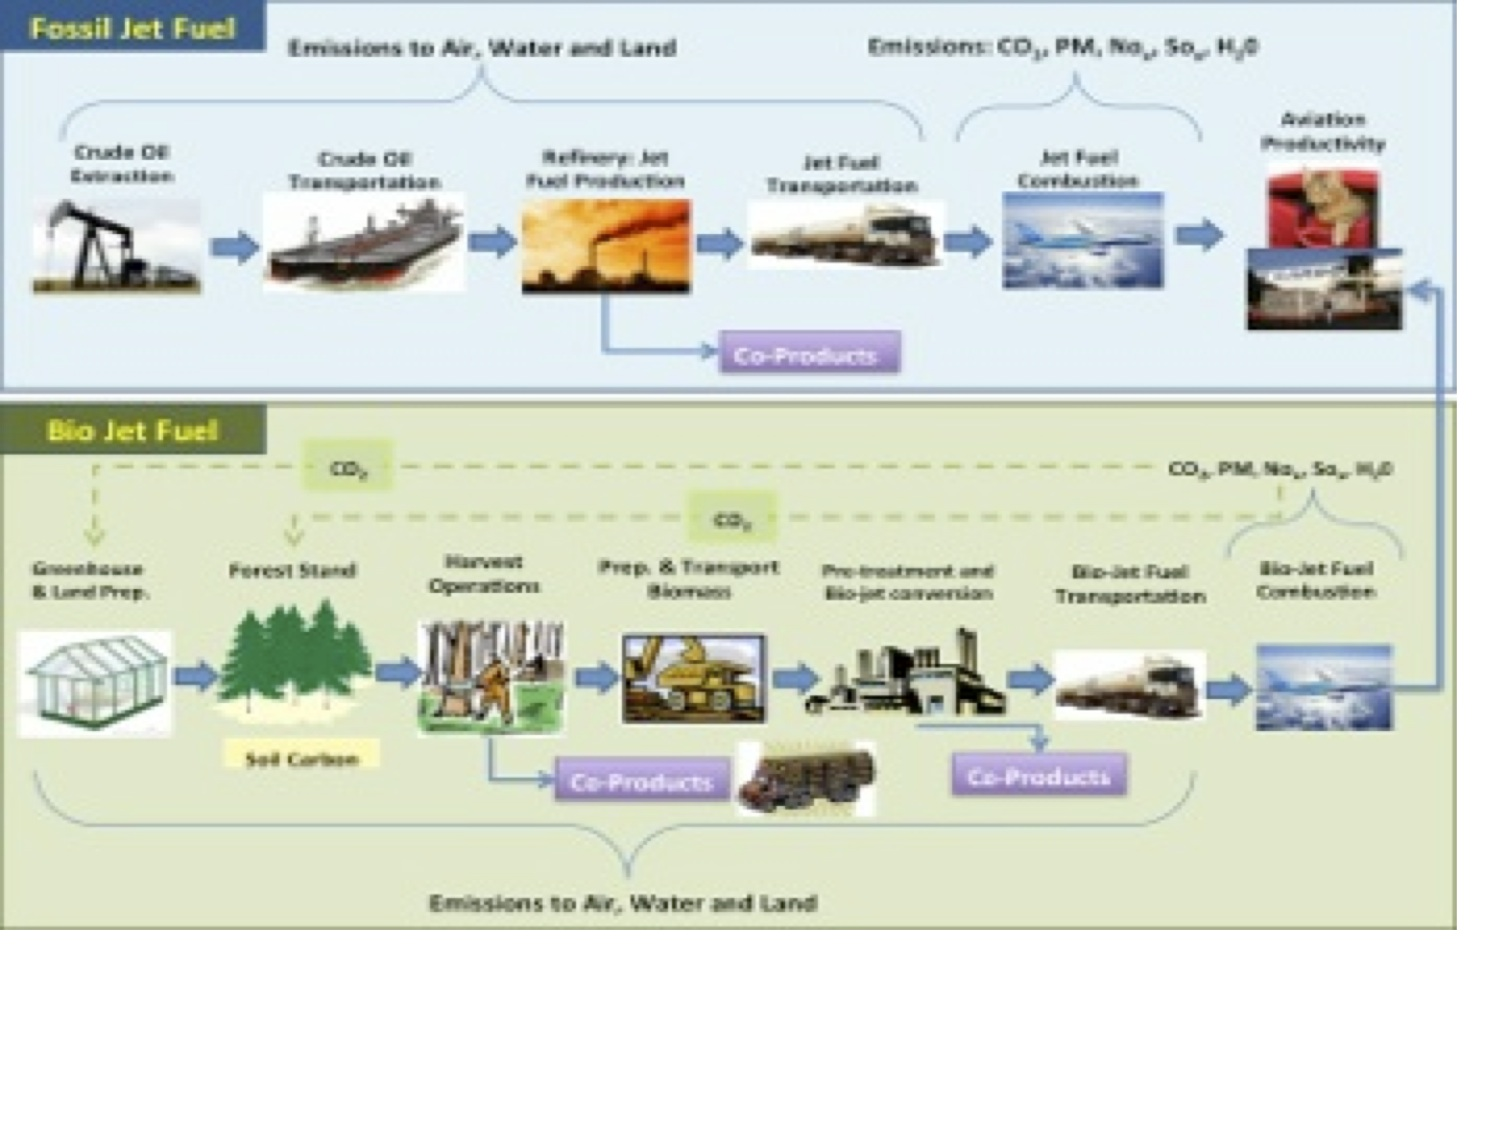 carbon cycle research paper Research article carbon cycle and climate change during the cretaceous inferred from a biogeochemical carbon cycle model in the present paper.